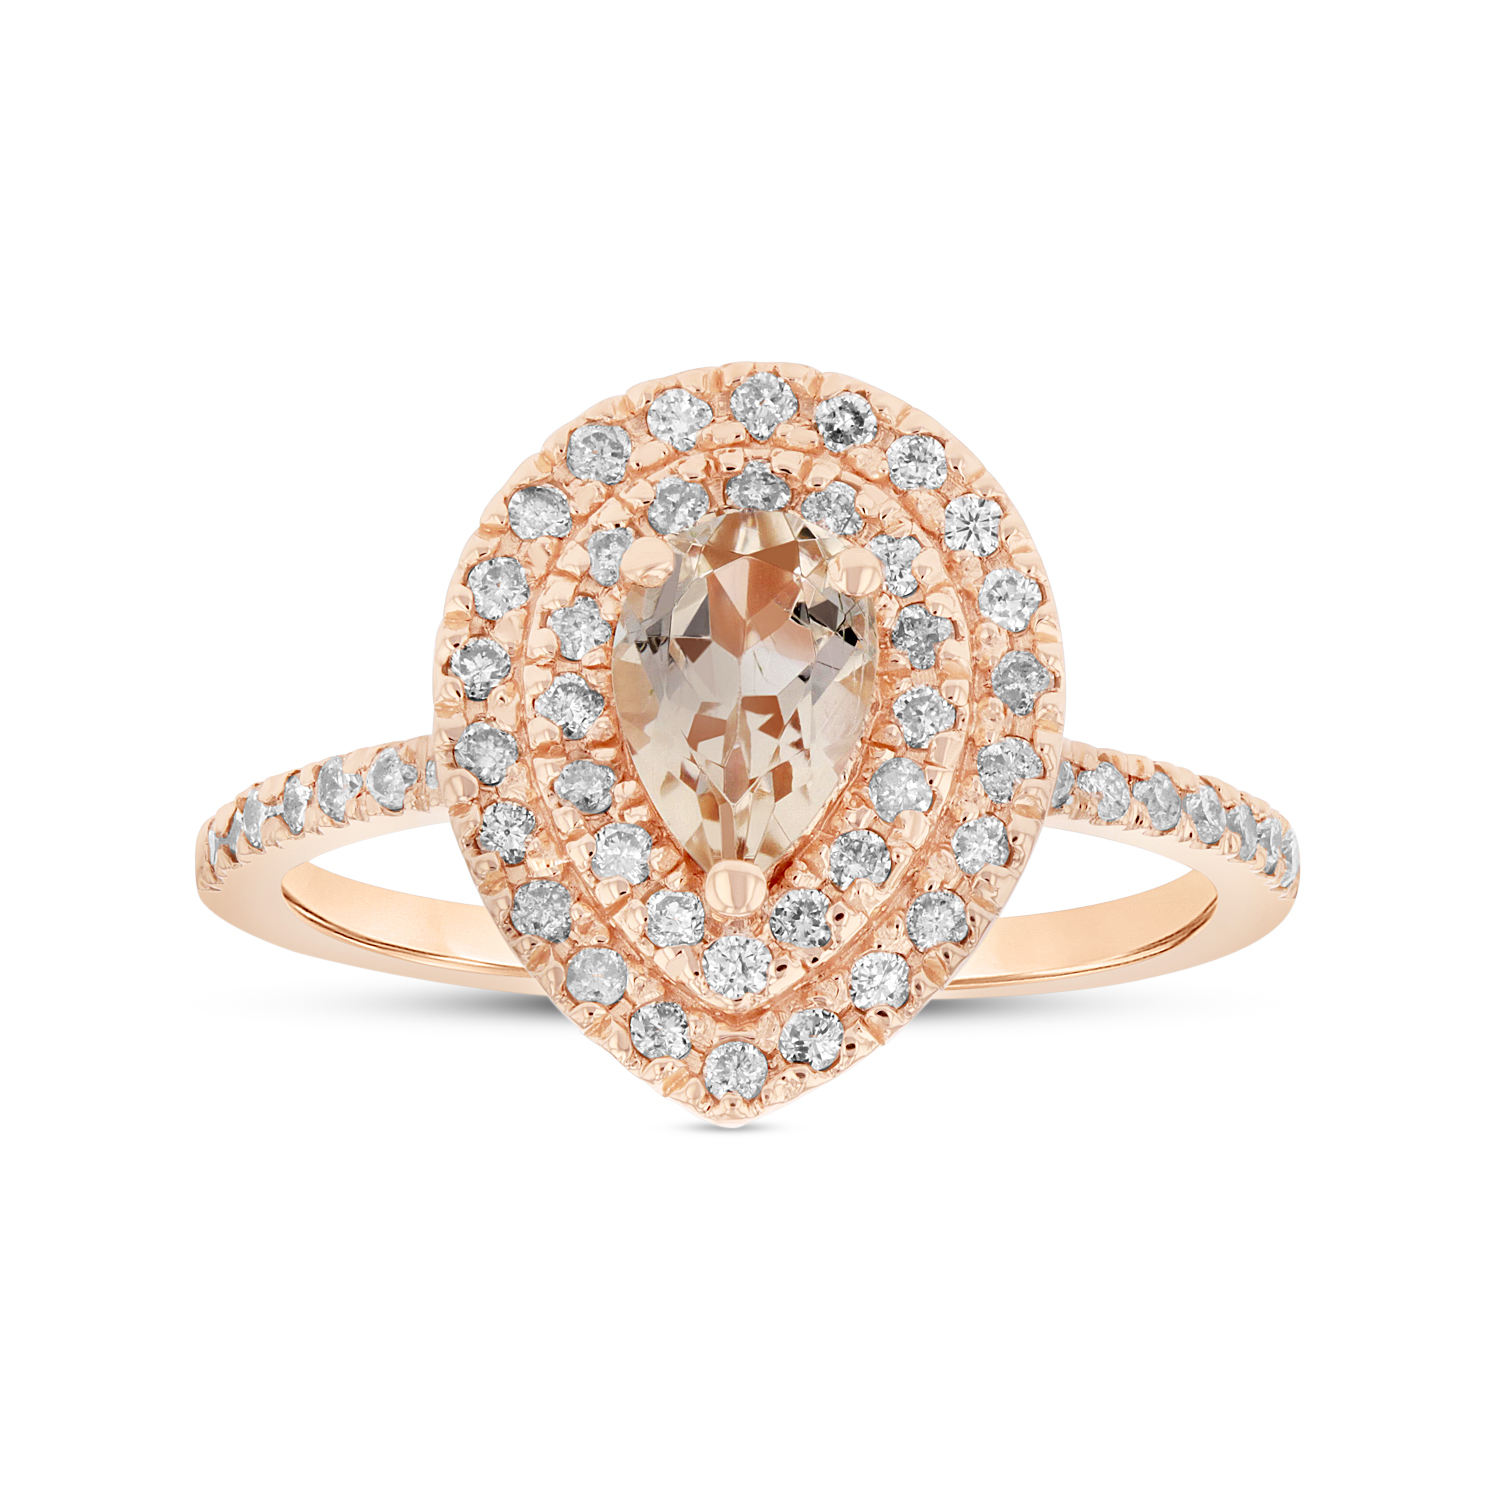 View 7X5 mm Pear Shape Morganite and Diamond Ring in 14k Rose Gold Double Row Halo